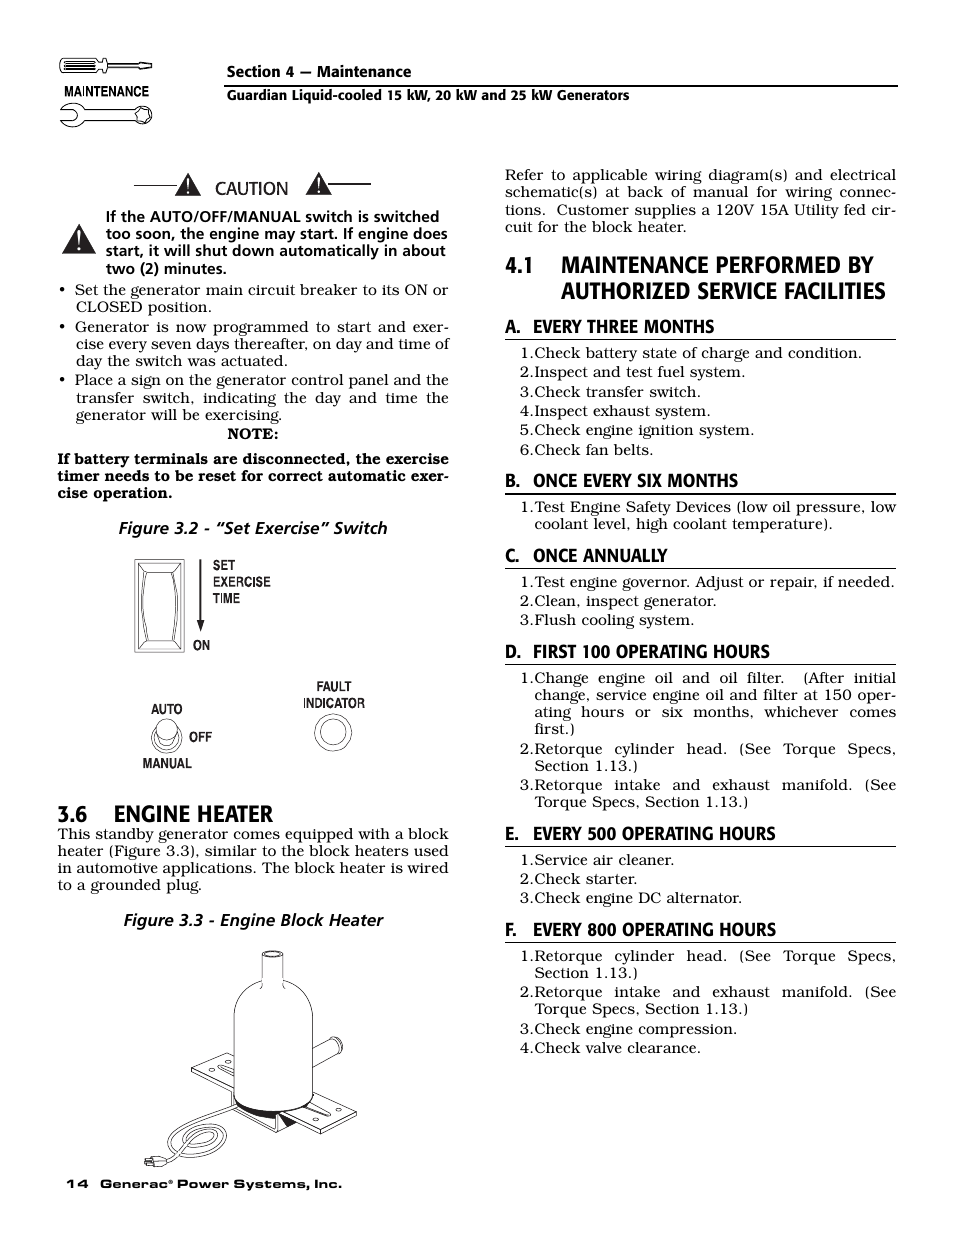 medium resolution of 6 engine heater generac 0047210 user manual page 16 52